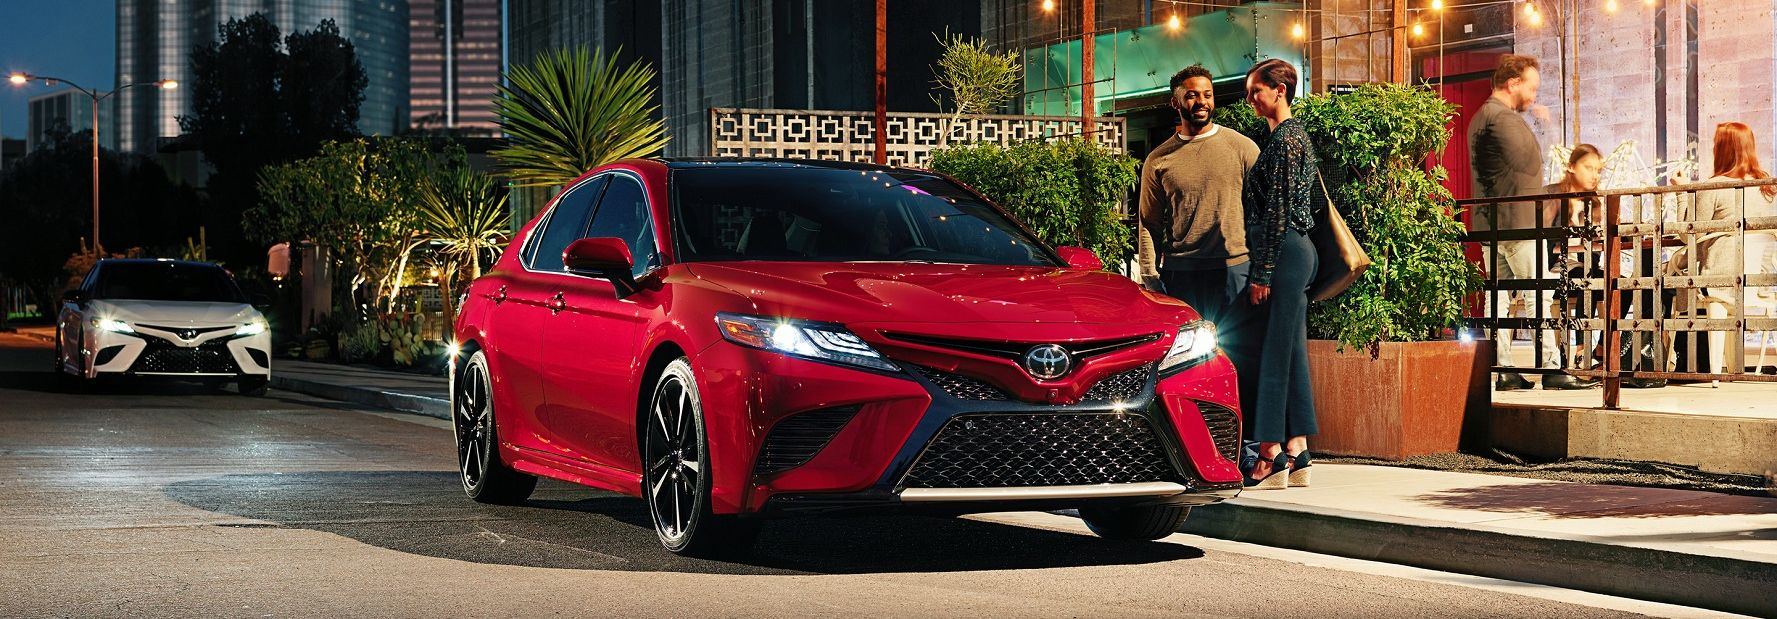 2019 Toyota Camry Financing near Loves Park, IL